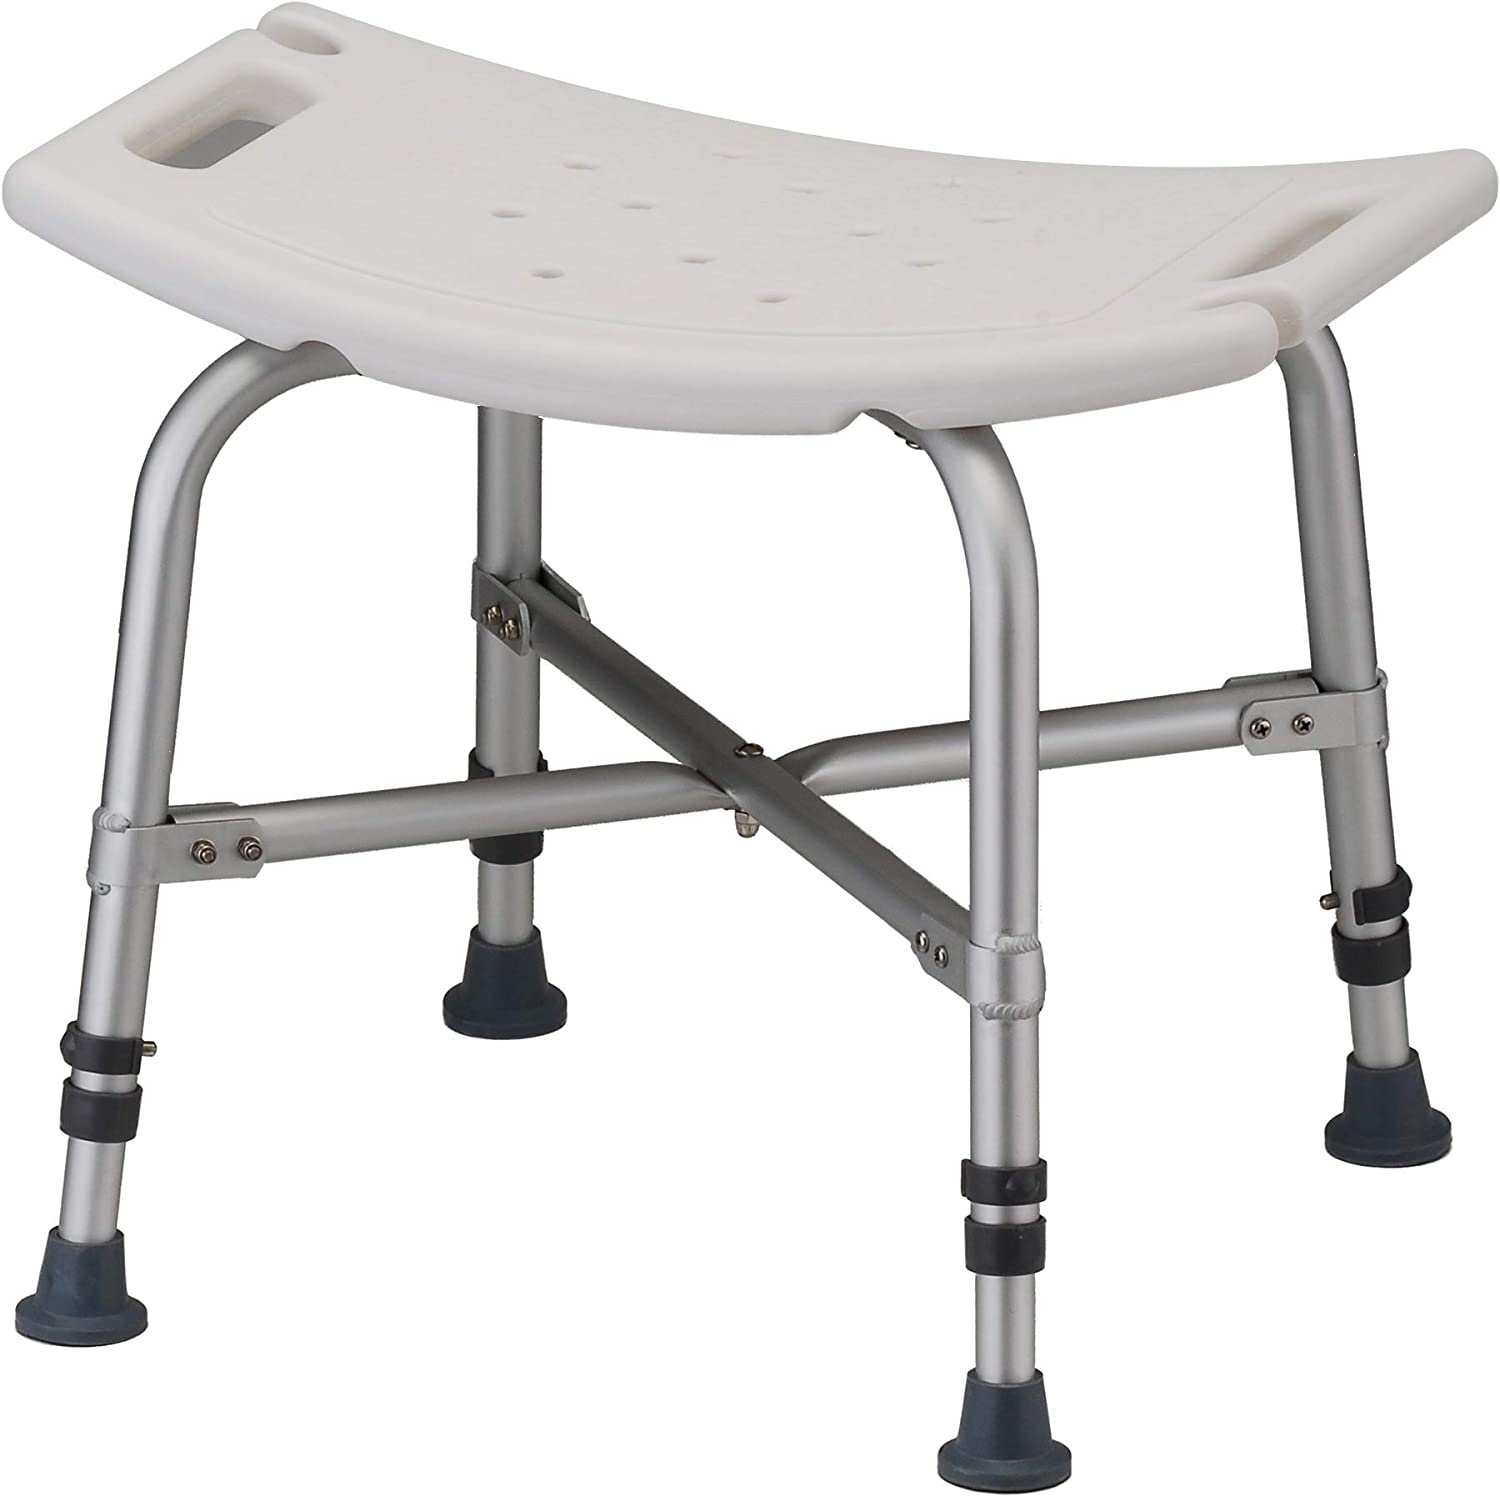 Amazon Com Nova Medical Products Heavy Duty Shower Bath Chair 500 Lb Weight Capacity Quick Easy Tools Free Assembly Lightweight Seat Height Adjustable Great For Travel White Health Personal